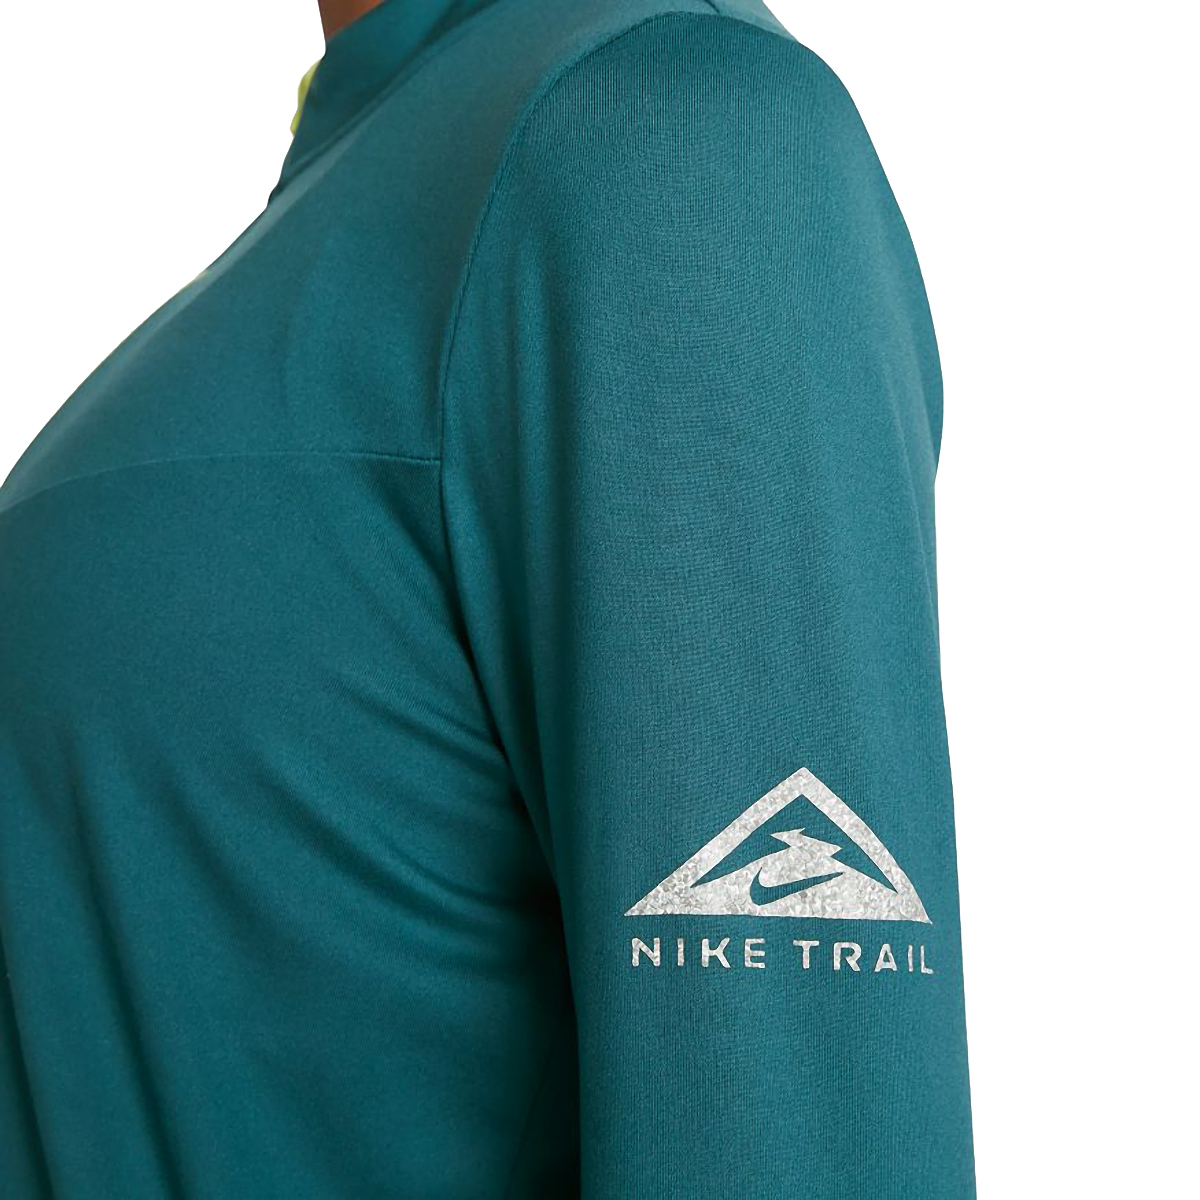 Women's Nike Element Trail Running Midlayer - Color: Dark Teal Green/Reflective Silver - Size: XS, Dark Teal Green/Reflective Silver, large, image 5